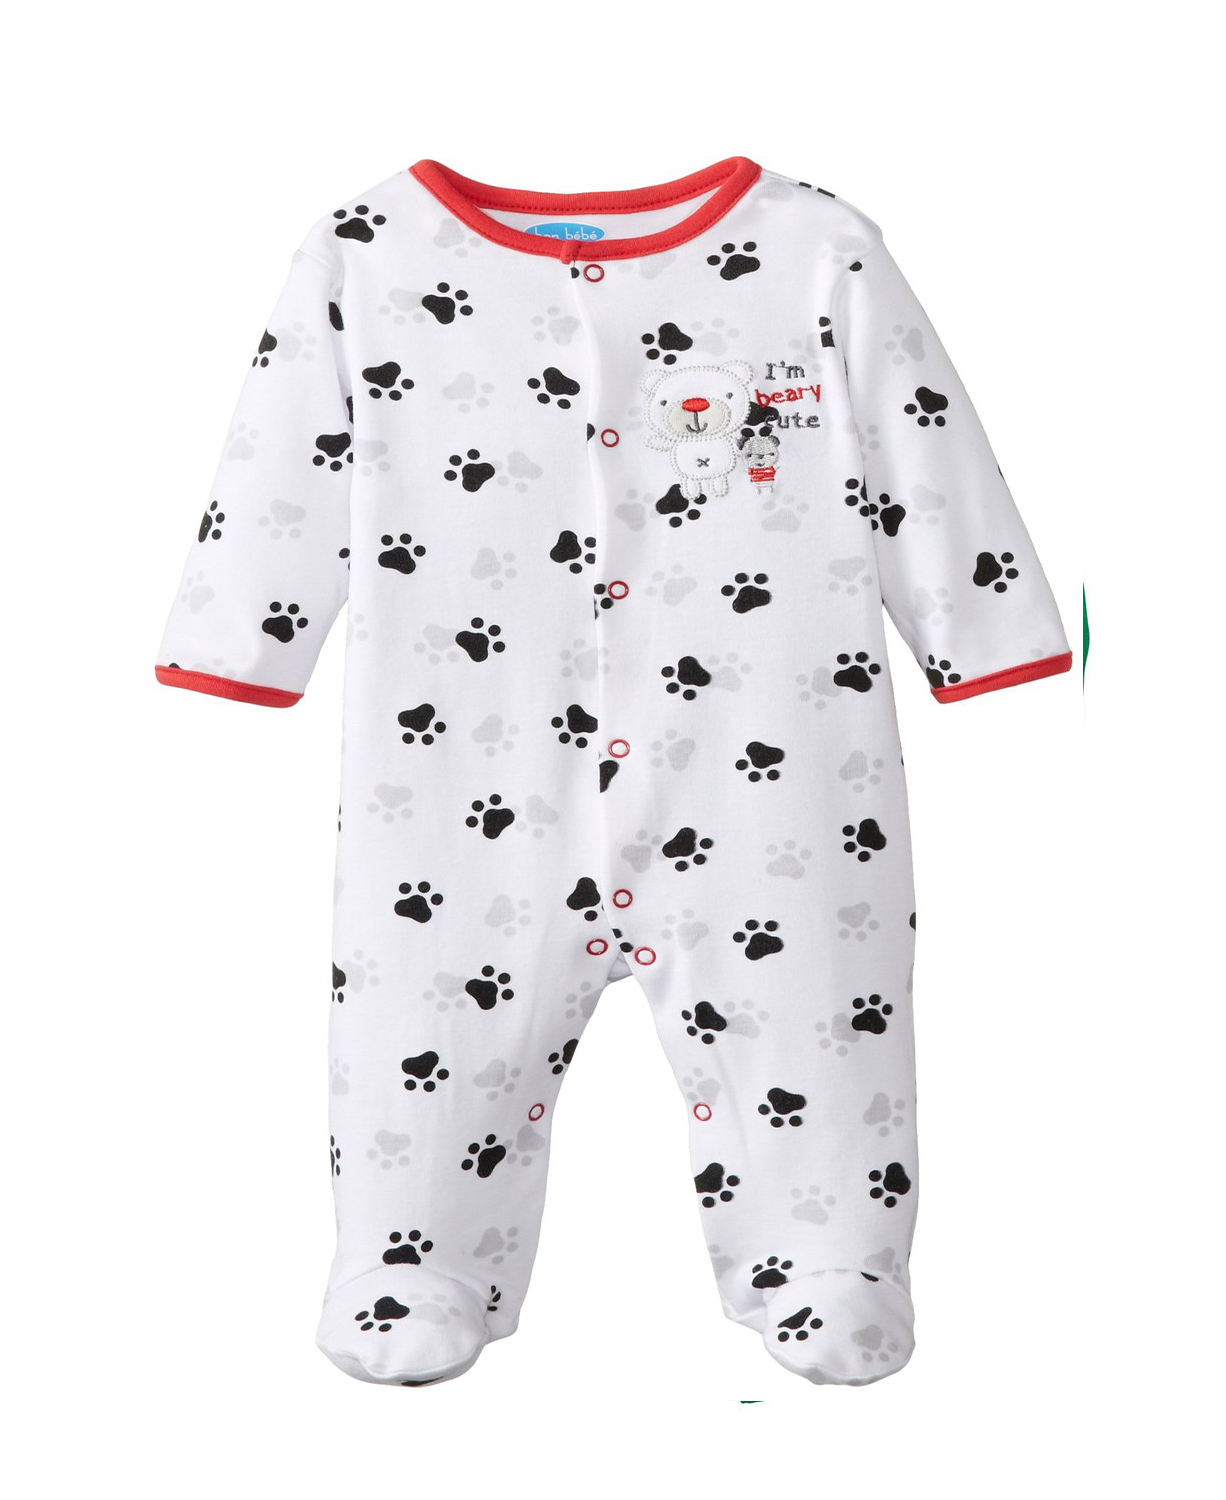 White BON BEBE Baby Boys Newborn I'M Beary Cute Footed Snap Baby ...